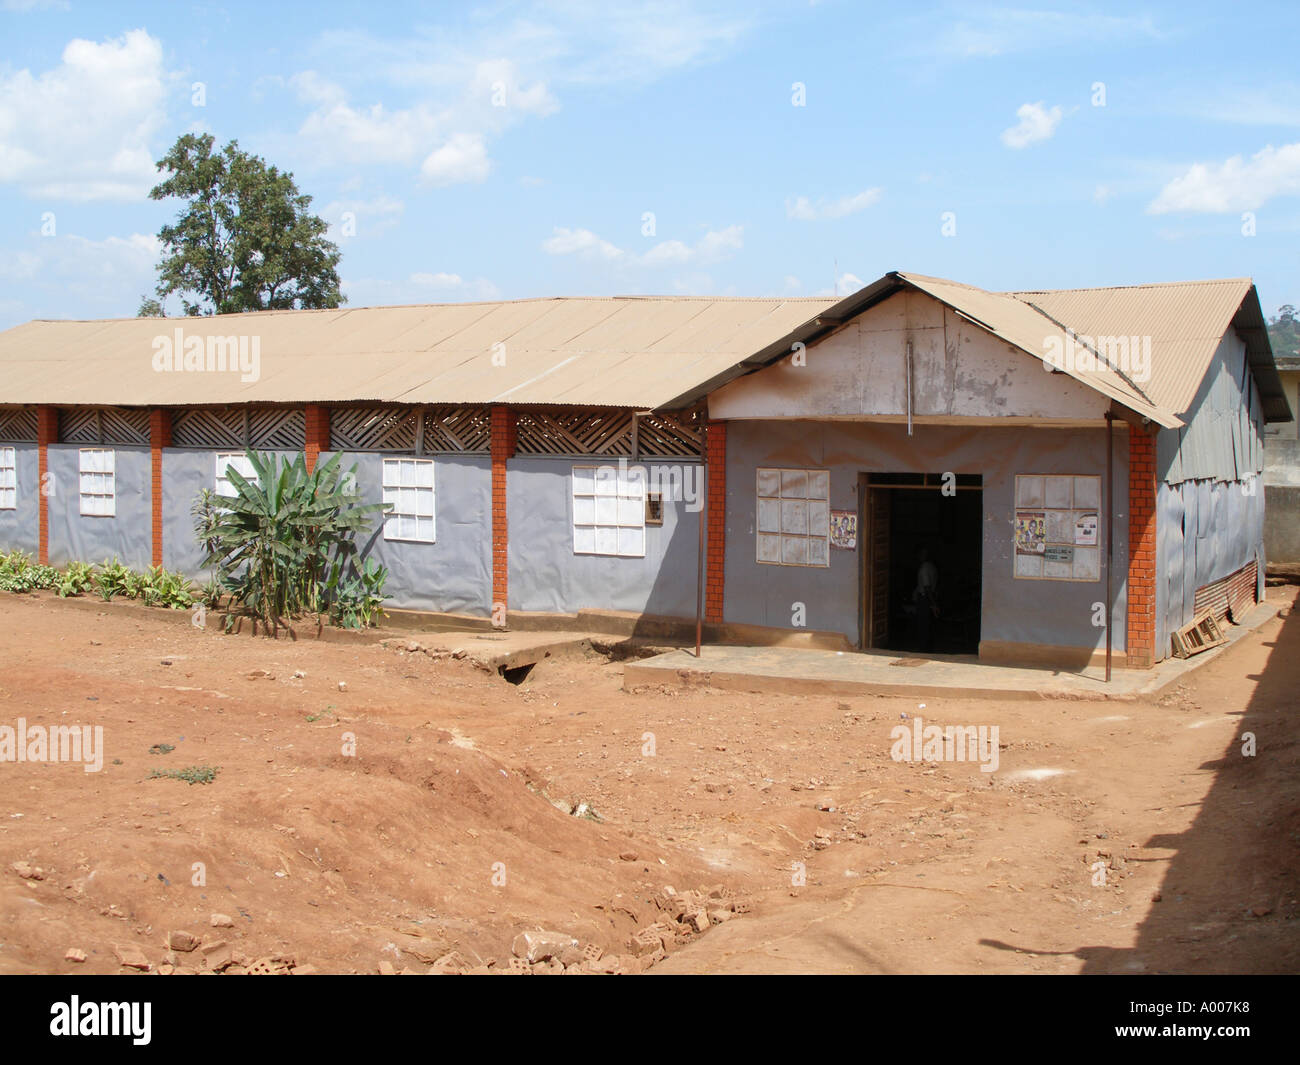 Grace Assembly pentecostal church, Kampala, Uganda - Stock Image